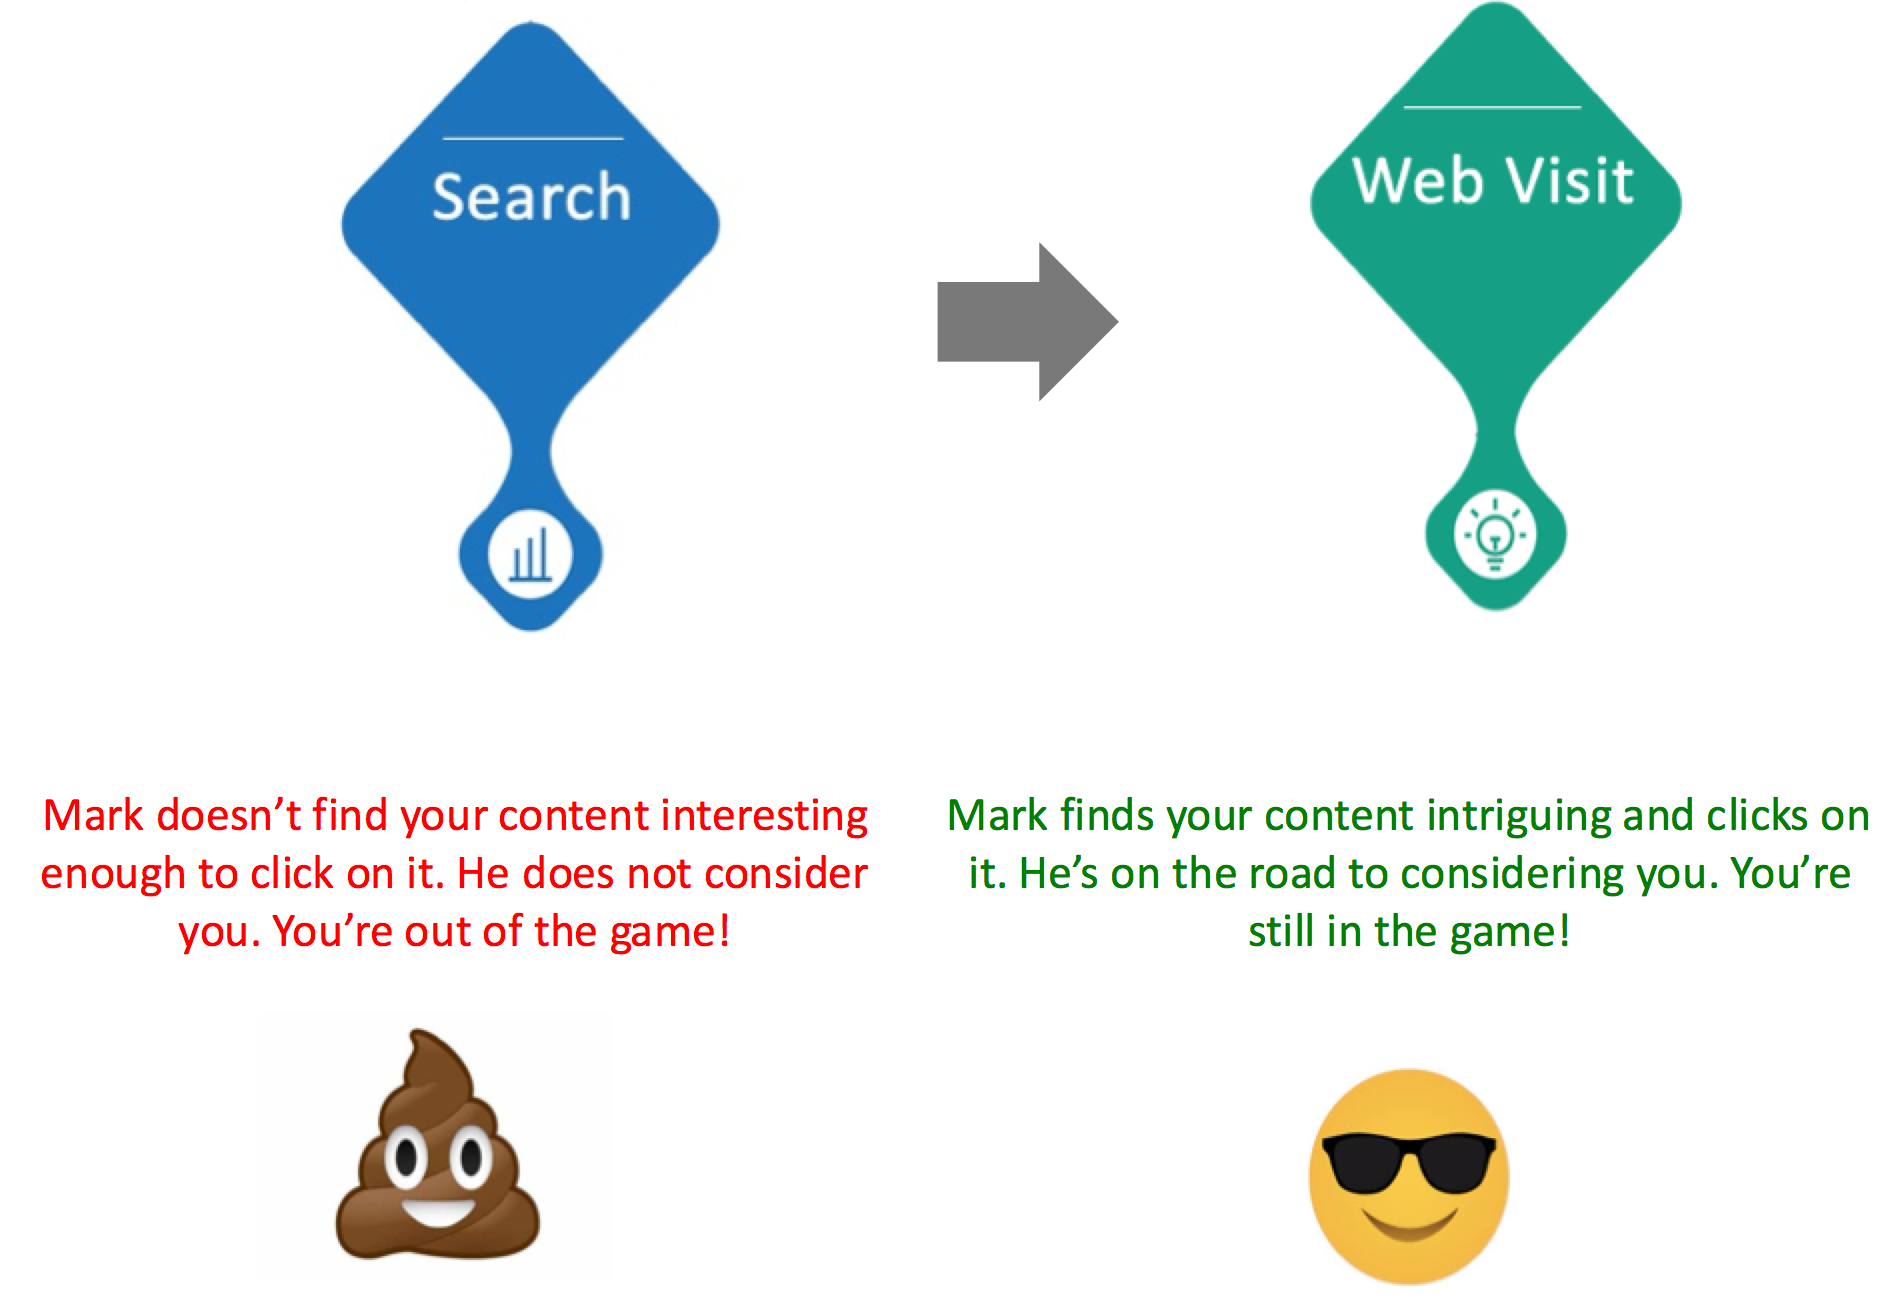 Pic 5 - search and web visit